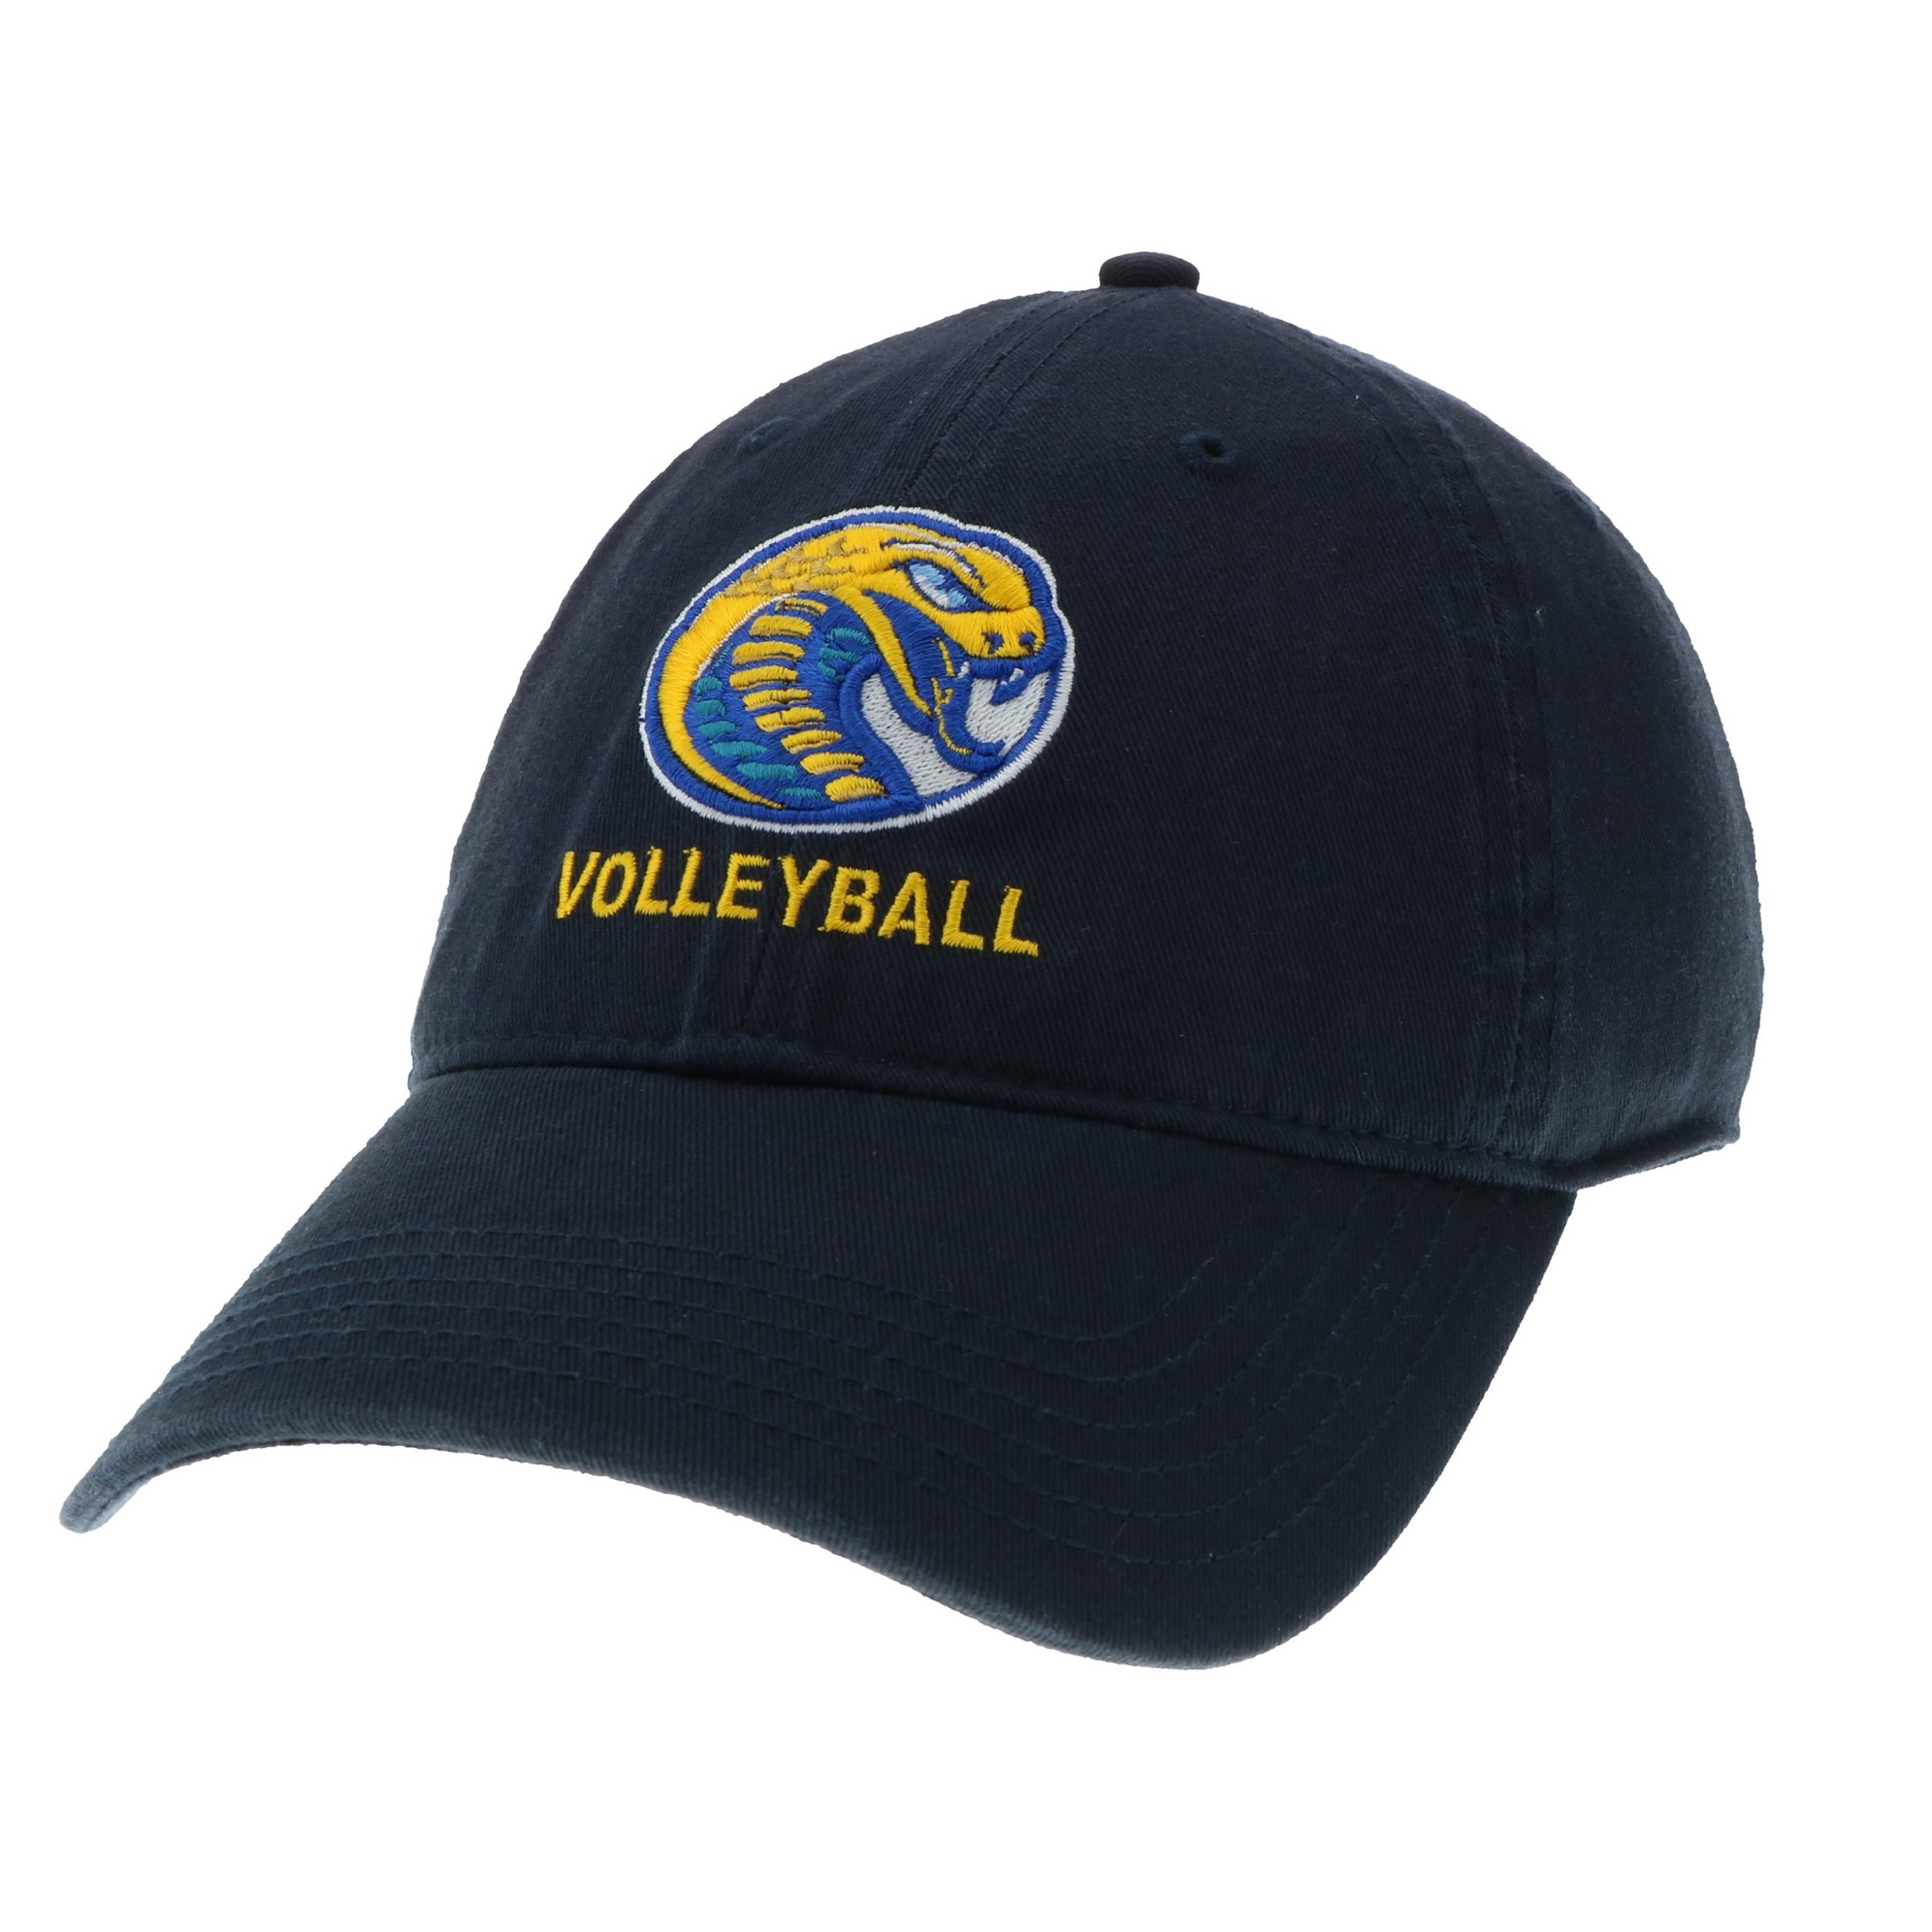 Image For Clearance Hat Sport VOLLEYBALL HAT